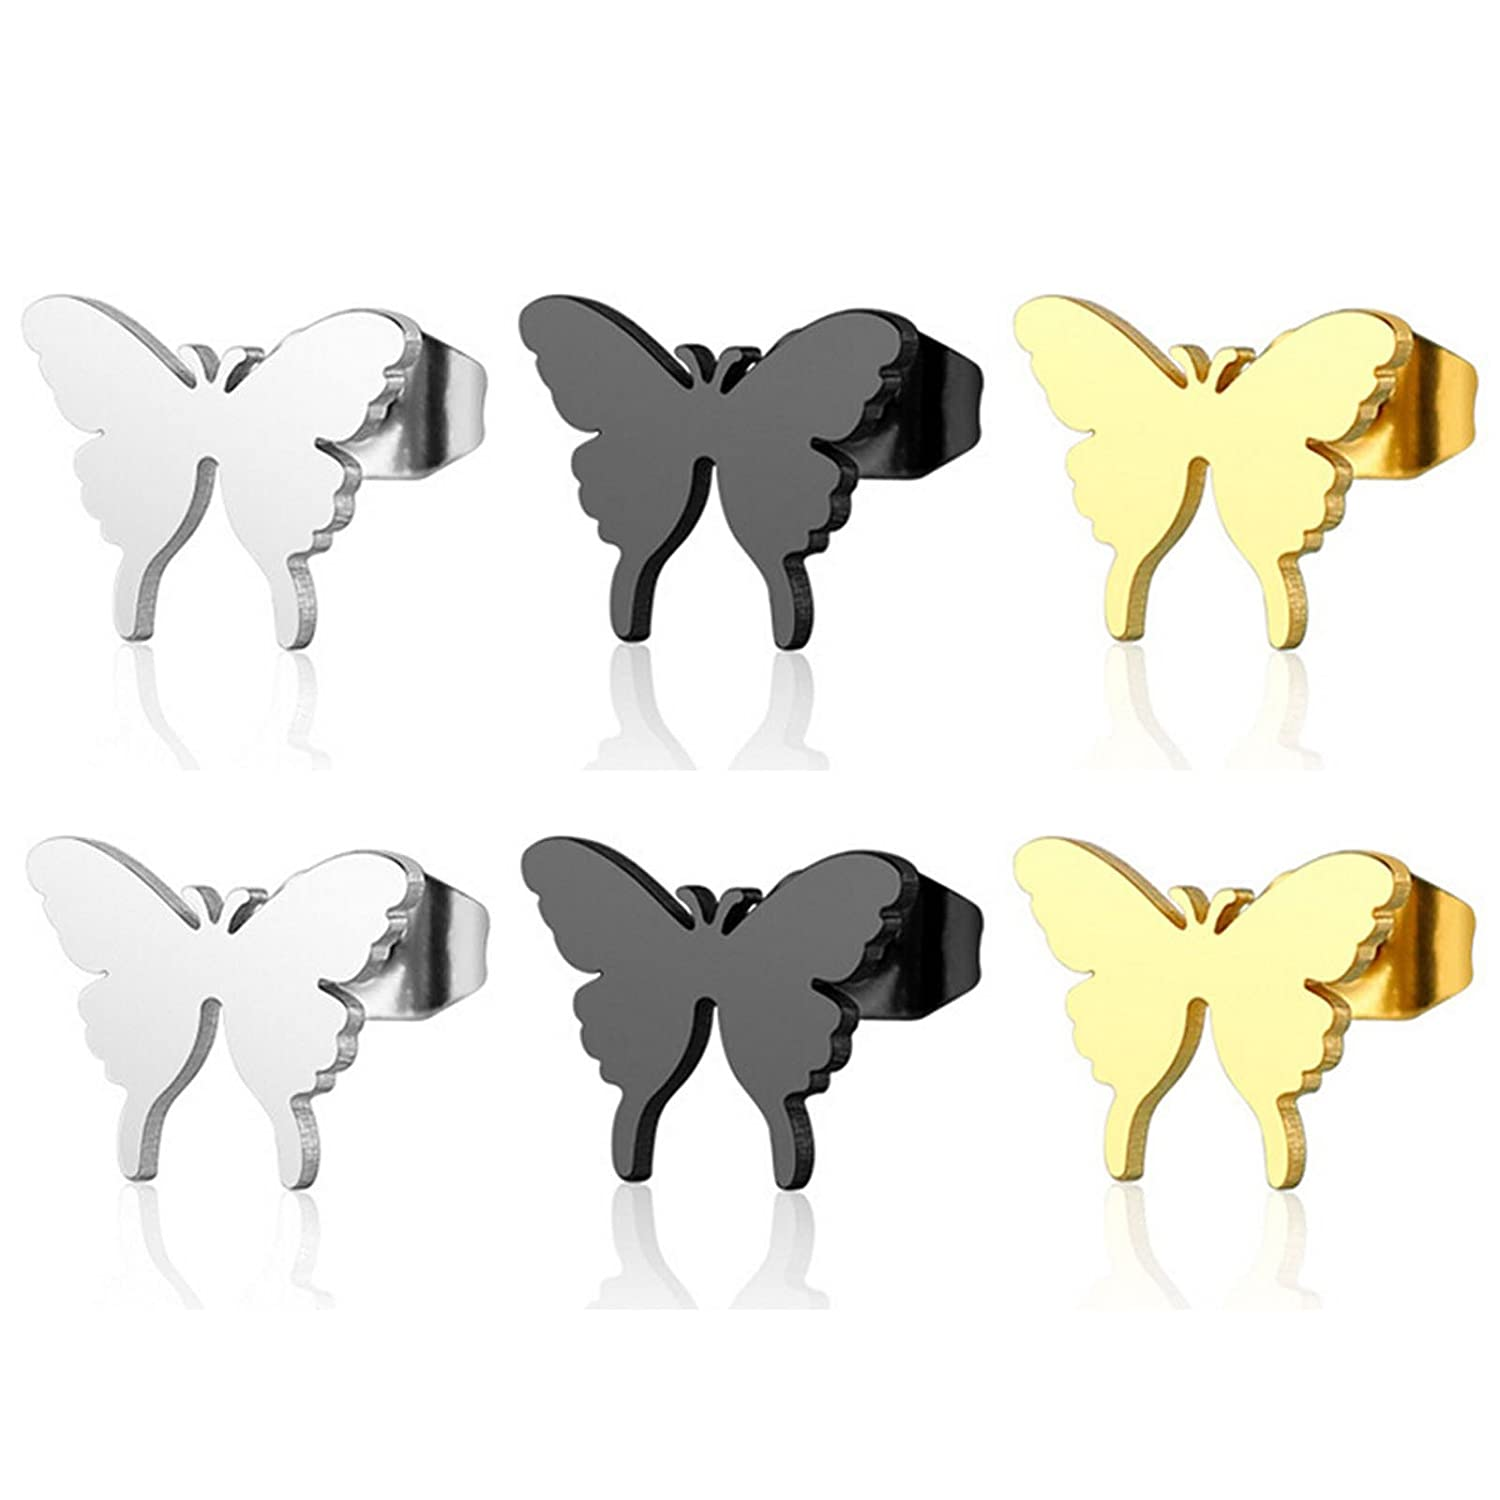 Butterfly Beydodo Surgical Stainless Steel Earring Posts Butterfly Earring 3 Pairs//6Pcs Stud Earrings